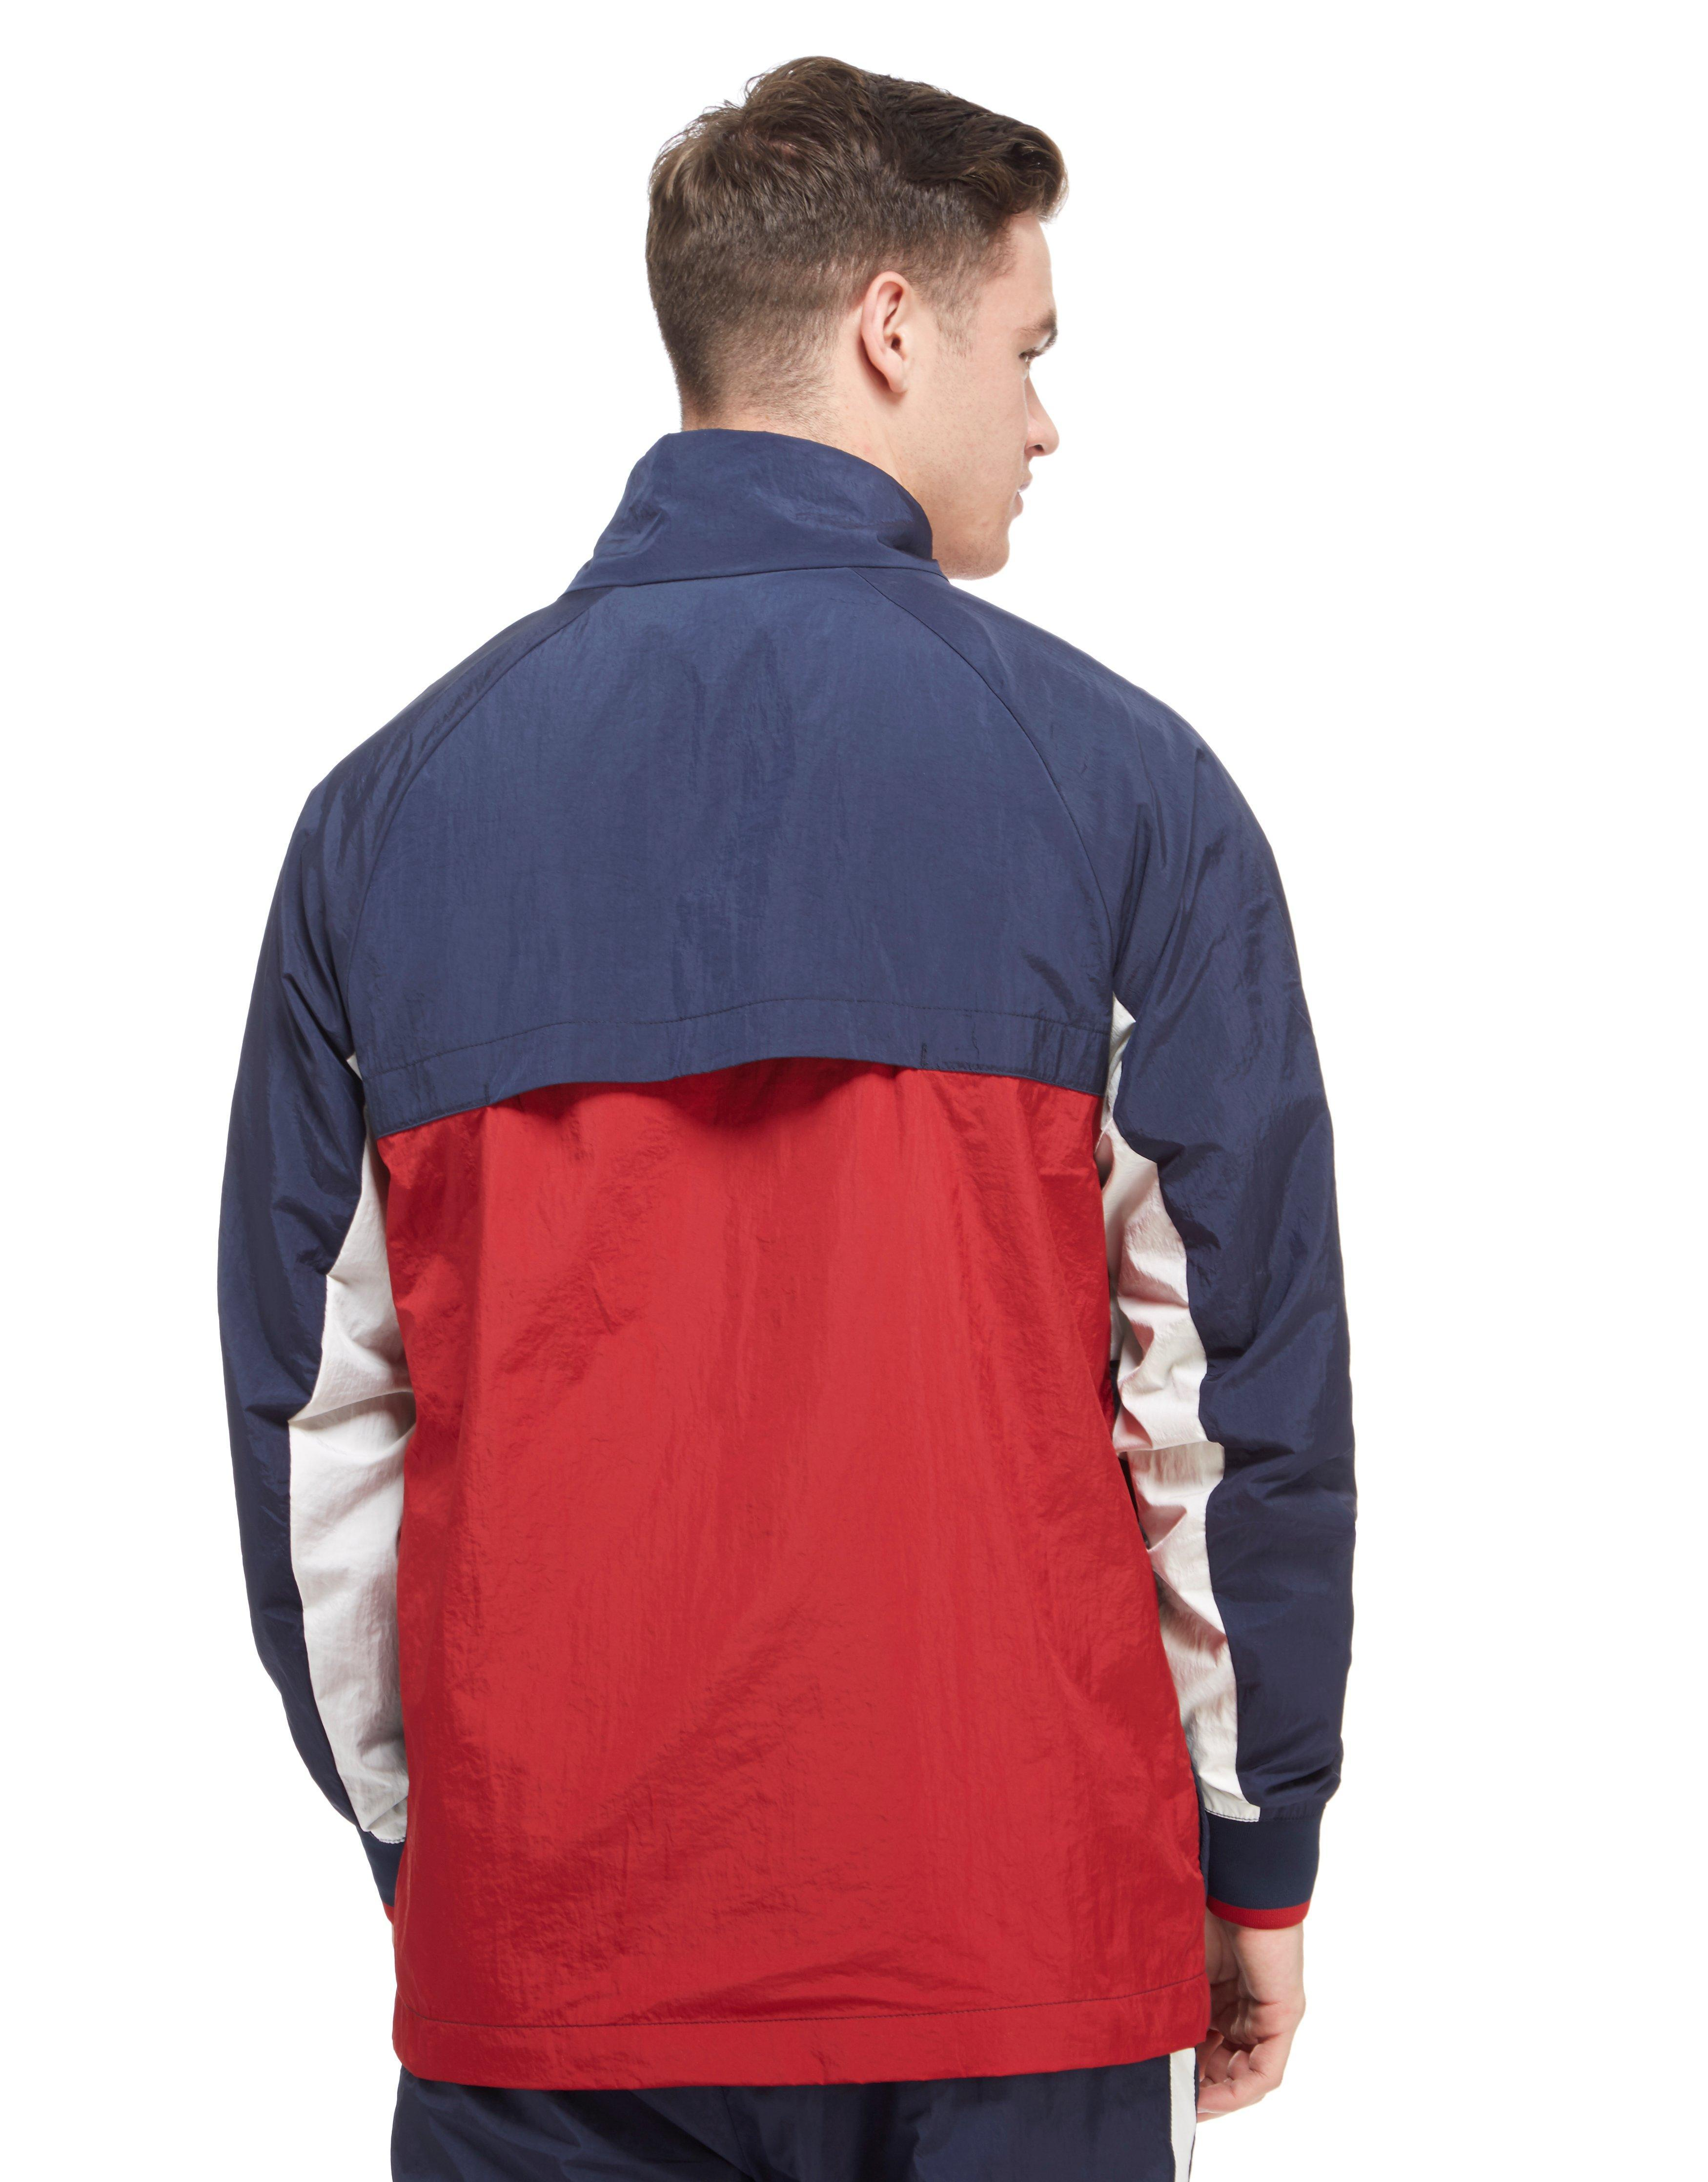 Nike Synthetic Archive Woven Jacket in Blue/Red (Blue) for Men